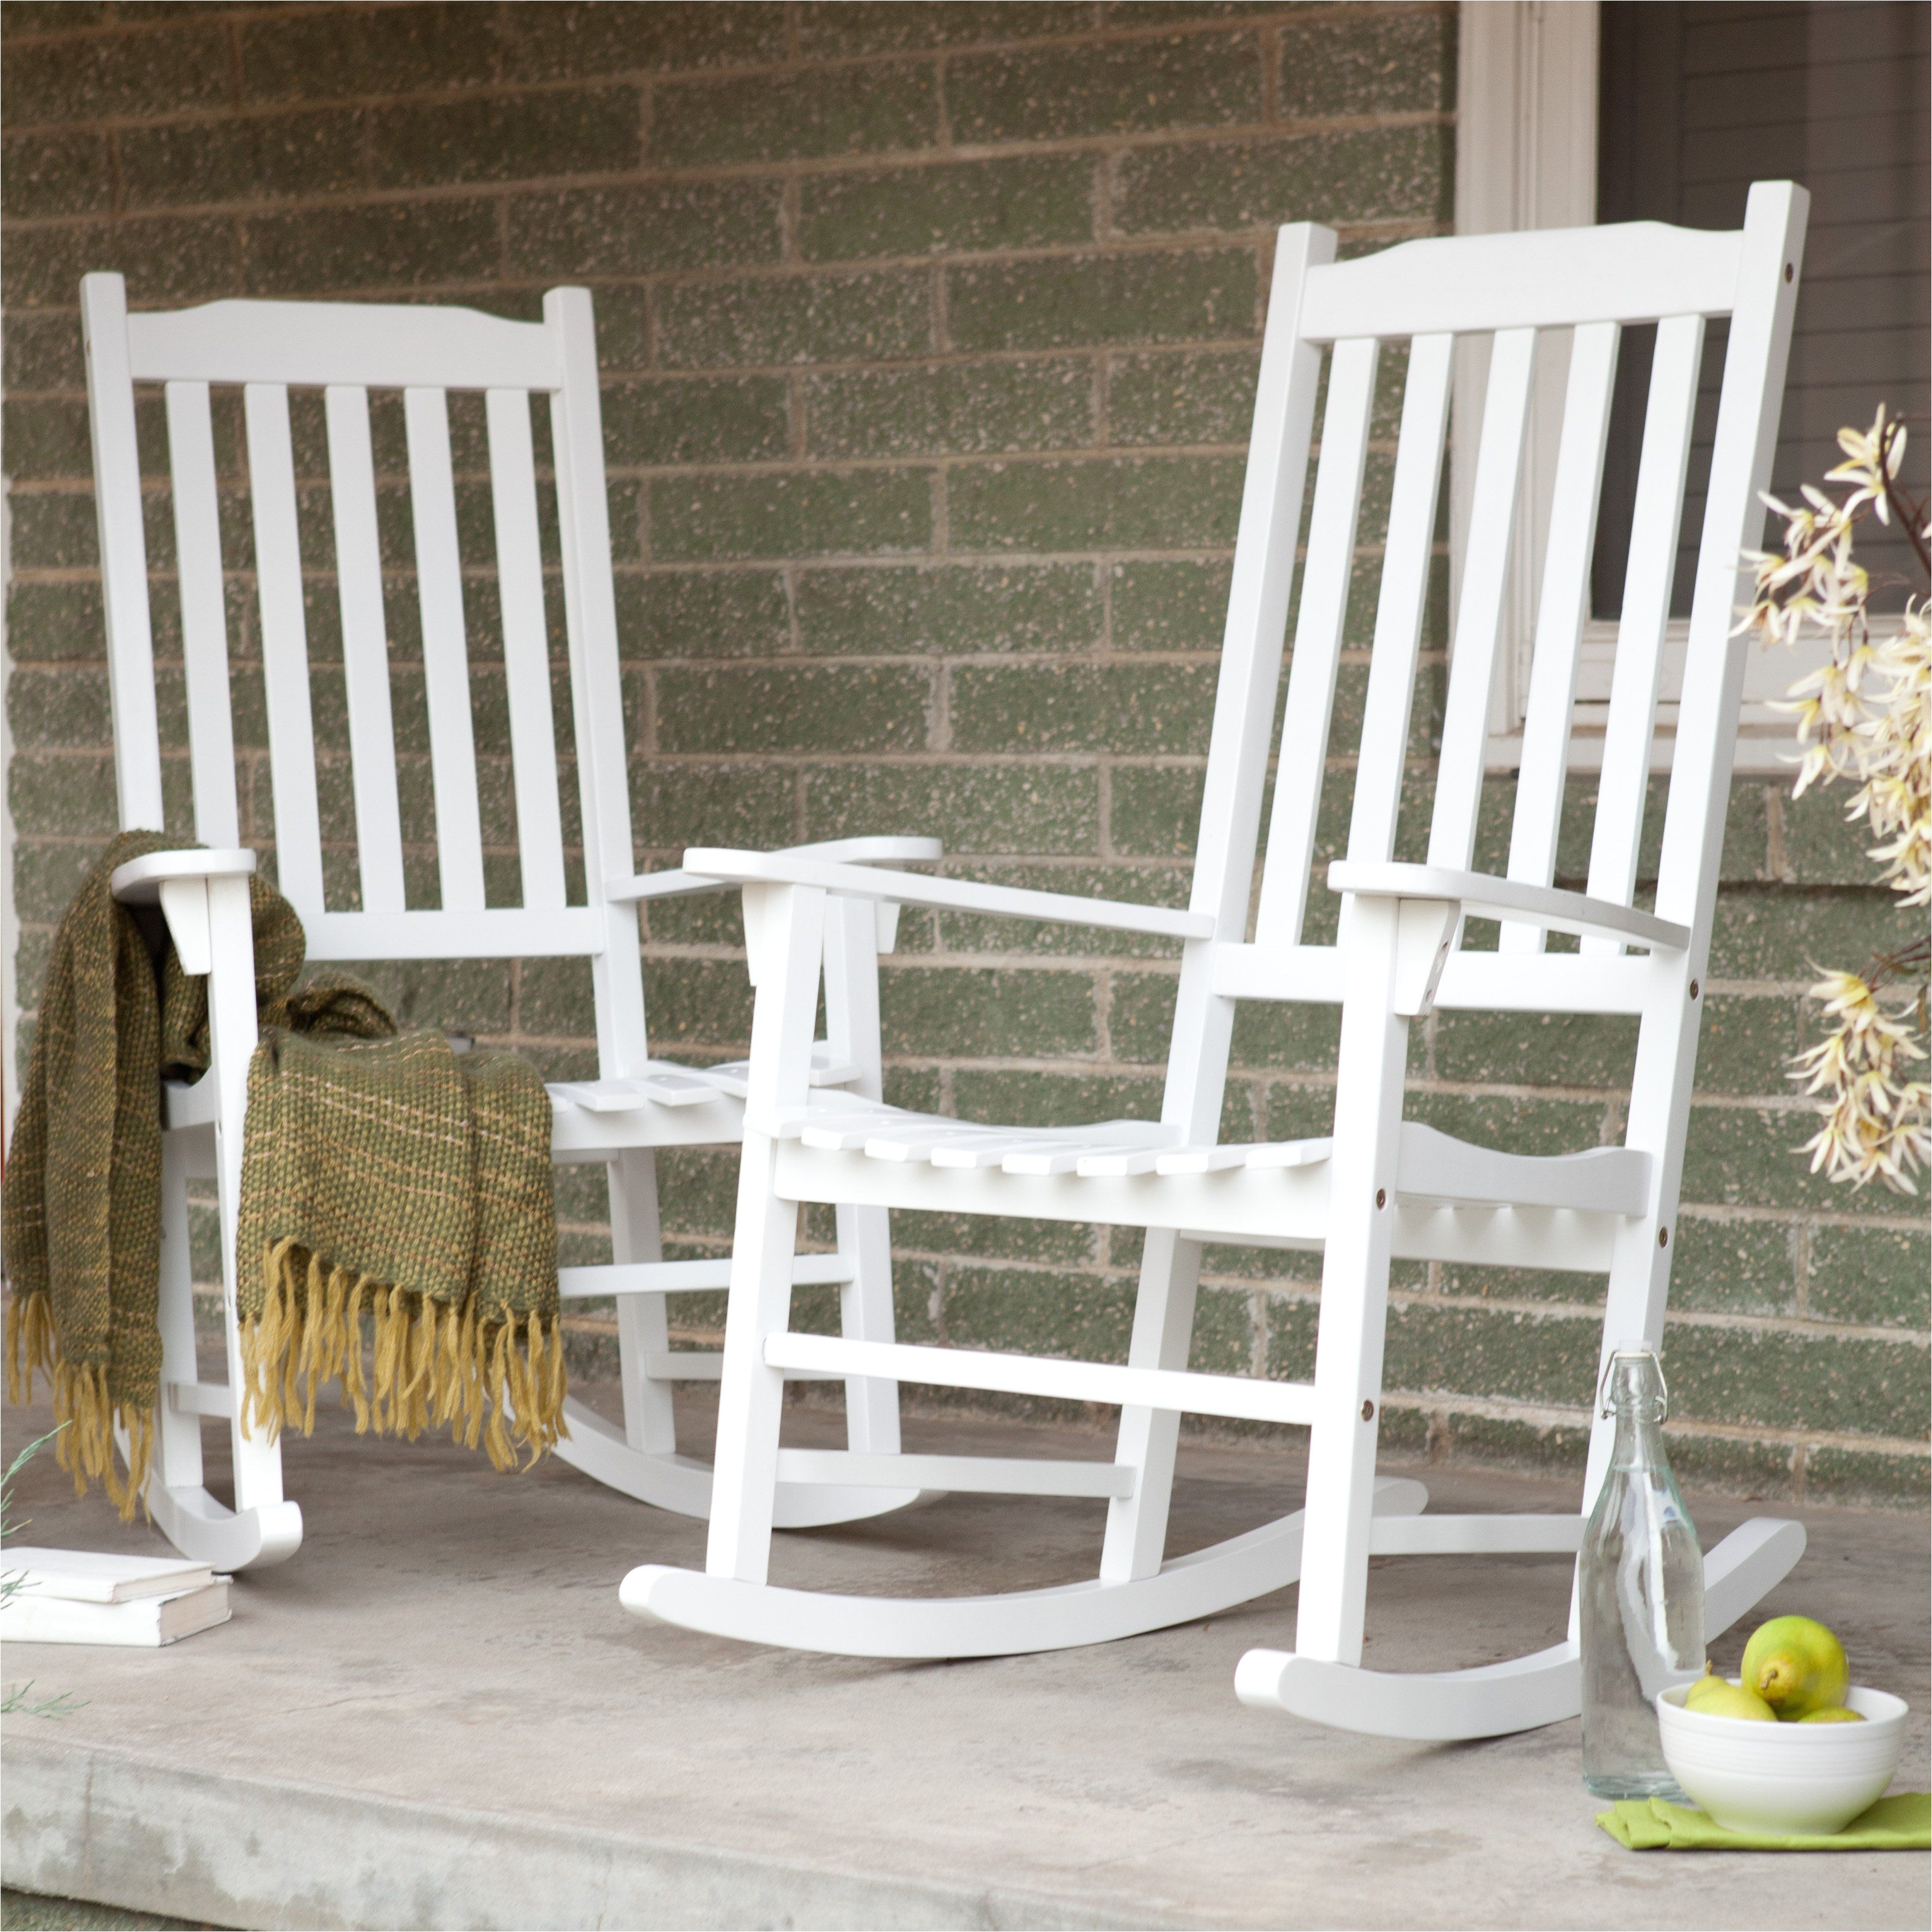 Pictures Of Rocking Chairs On Porches Coral Coast Indoor Outdoor Mission Slat Rocking Chairs White Set